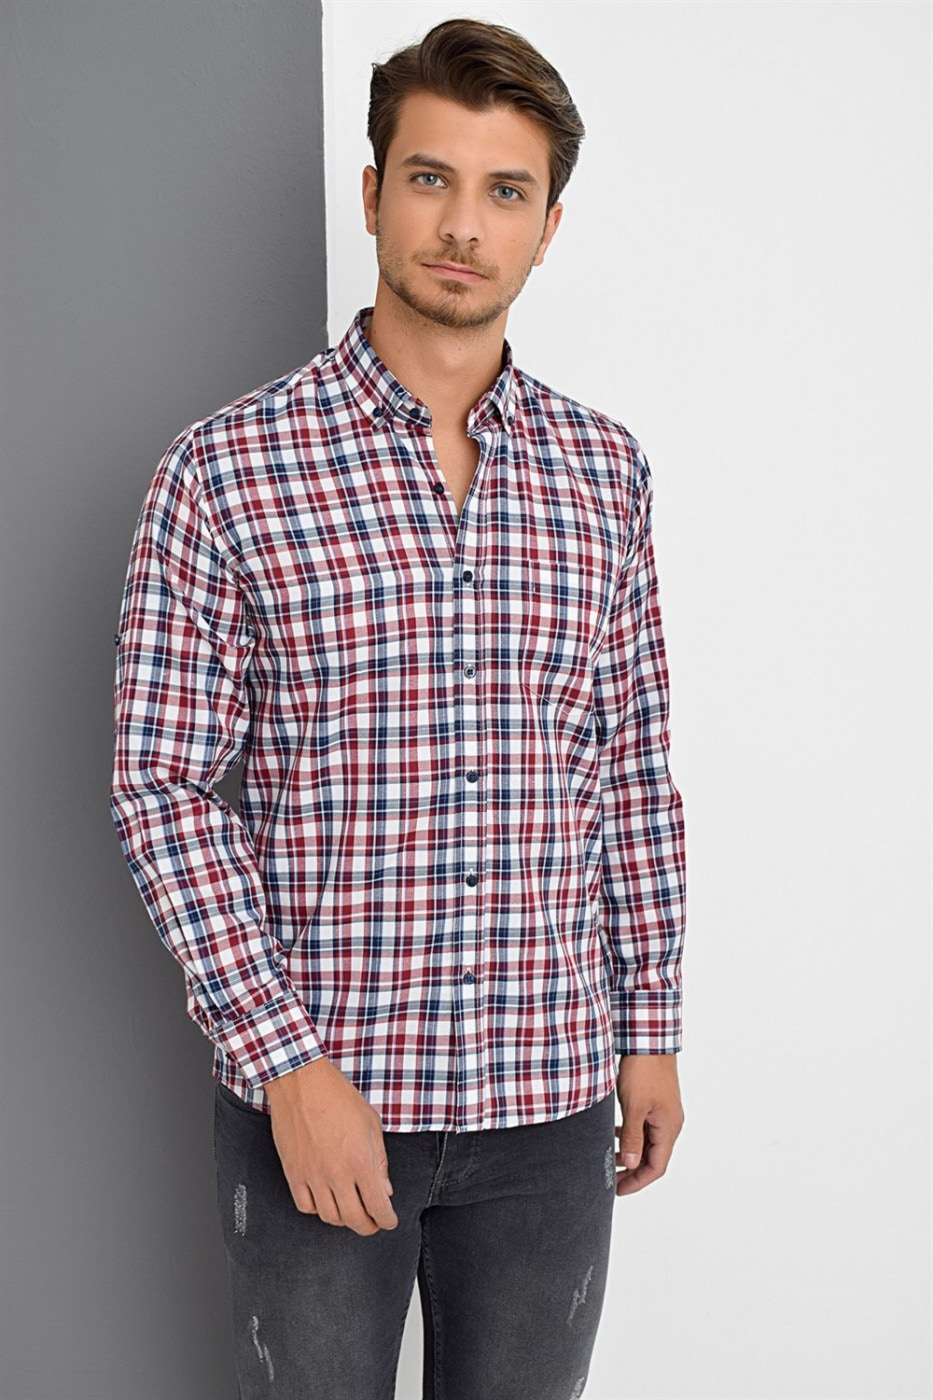 G669 DEWBERRY MEN's SHIRT-BURGUNDY